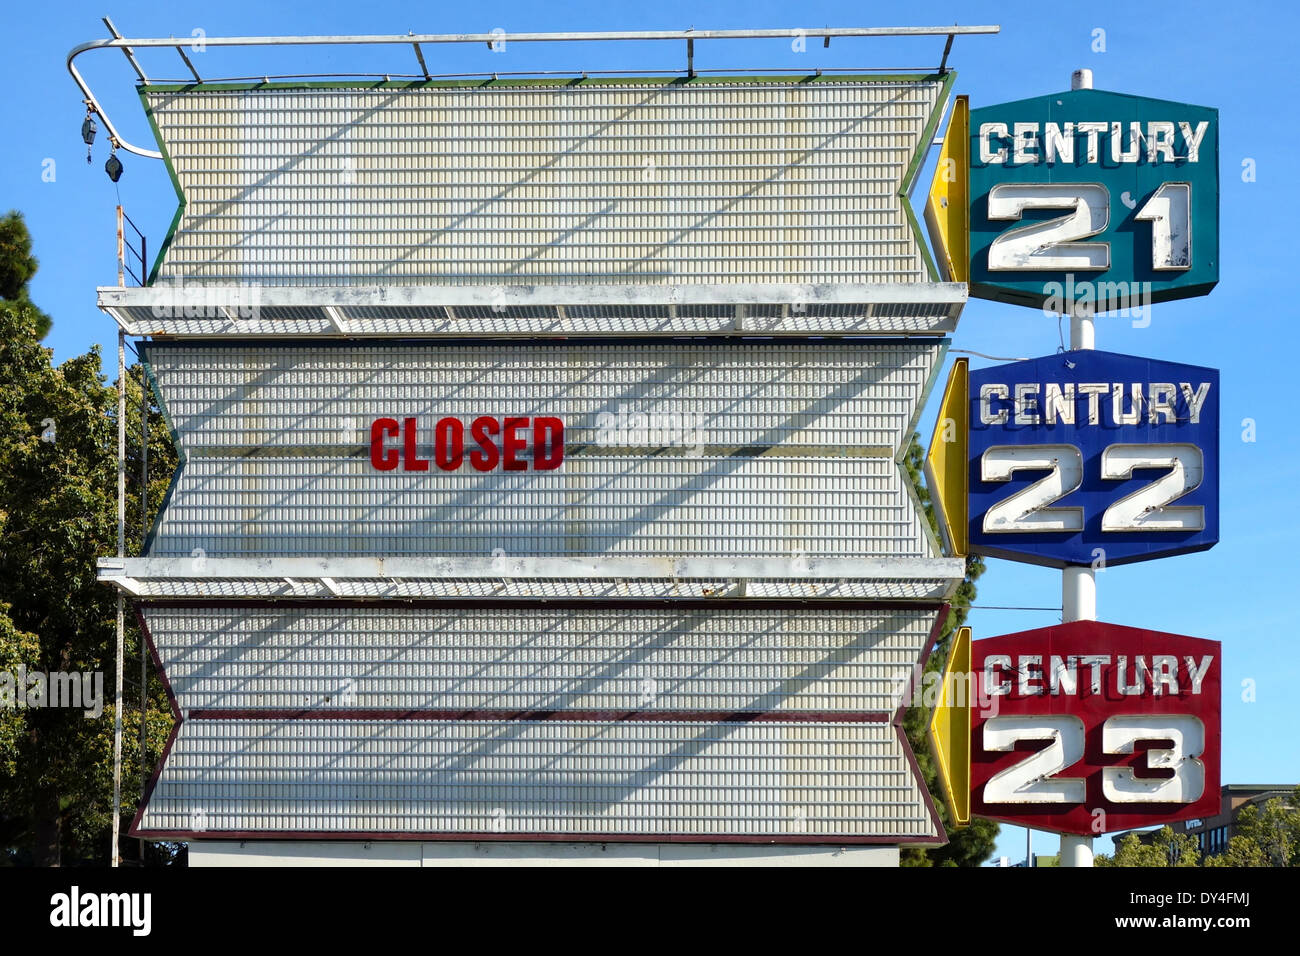 After 50 years in business, the Century Theatres in San Jose, California close. - Stock Image